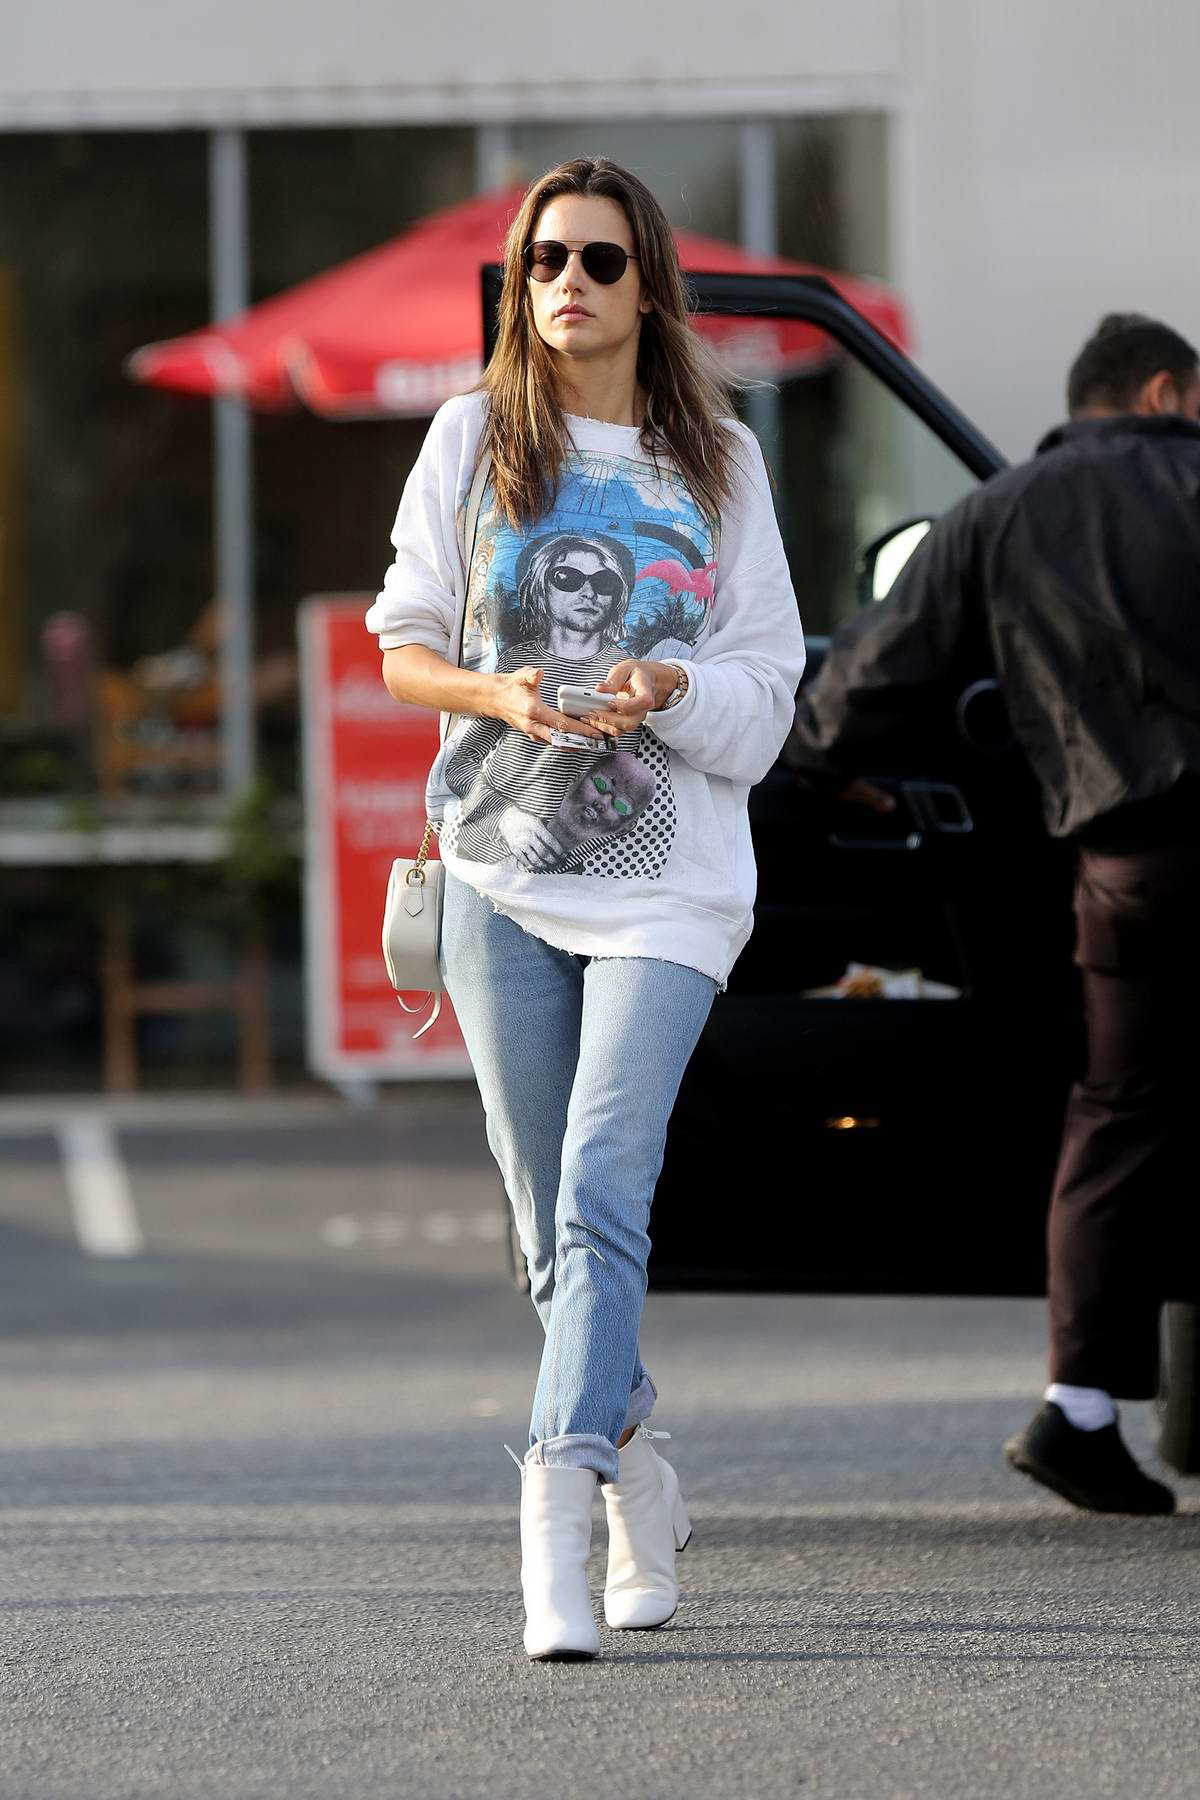 Alessandra Ambrosio dressed in blue jeans paired with white boots while out and about in Los Angeles